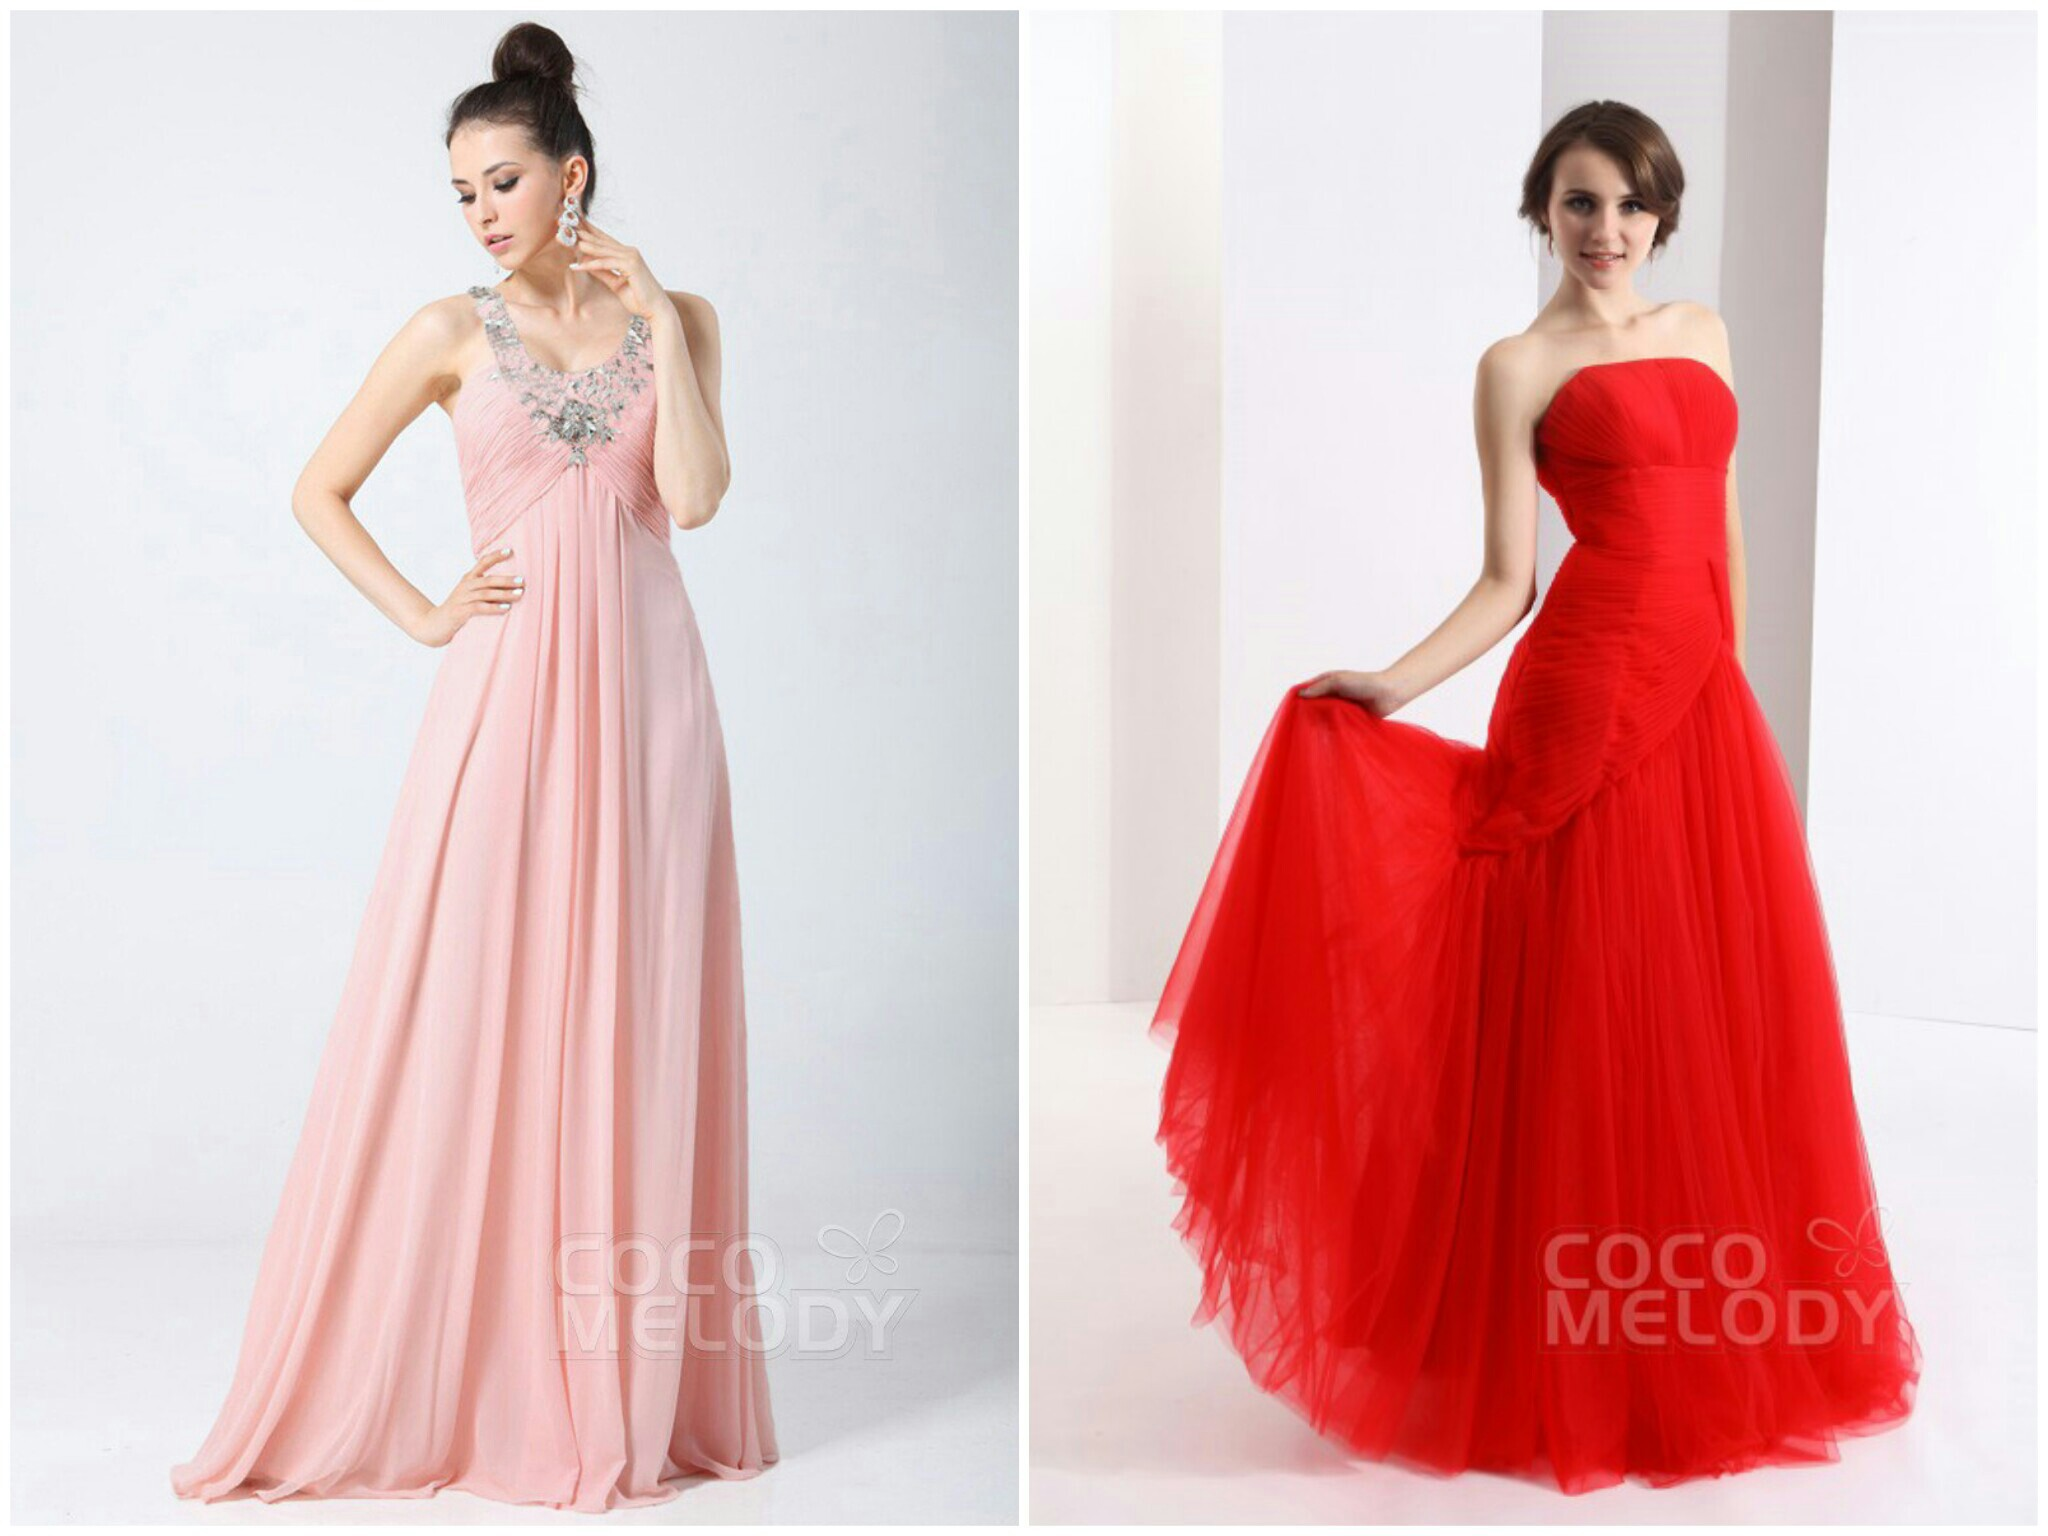 evening dresses from cocomelody